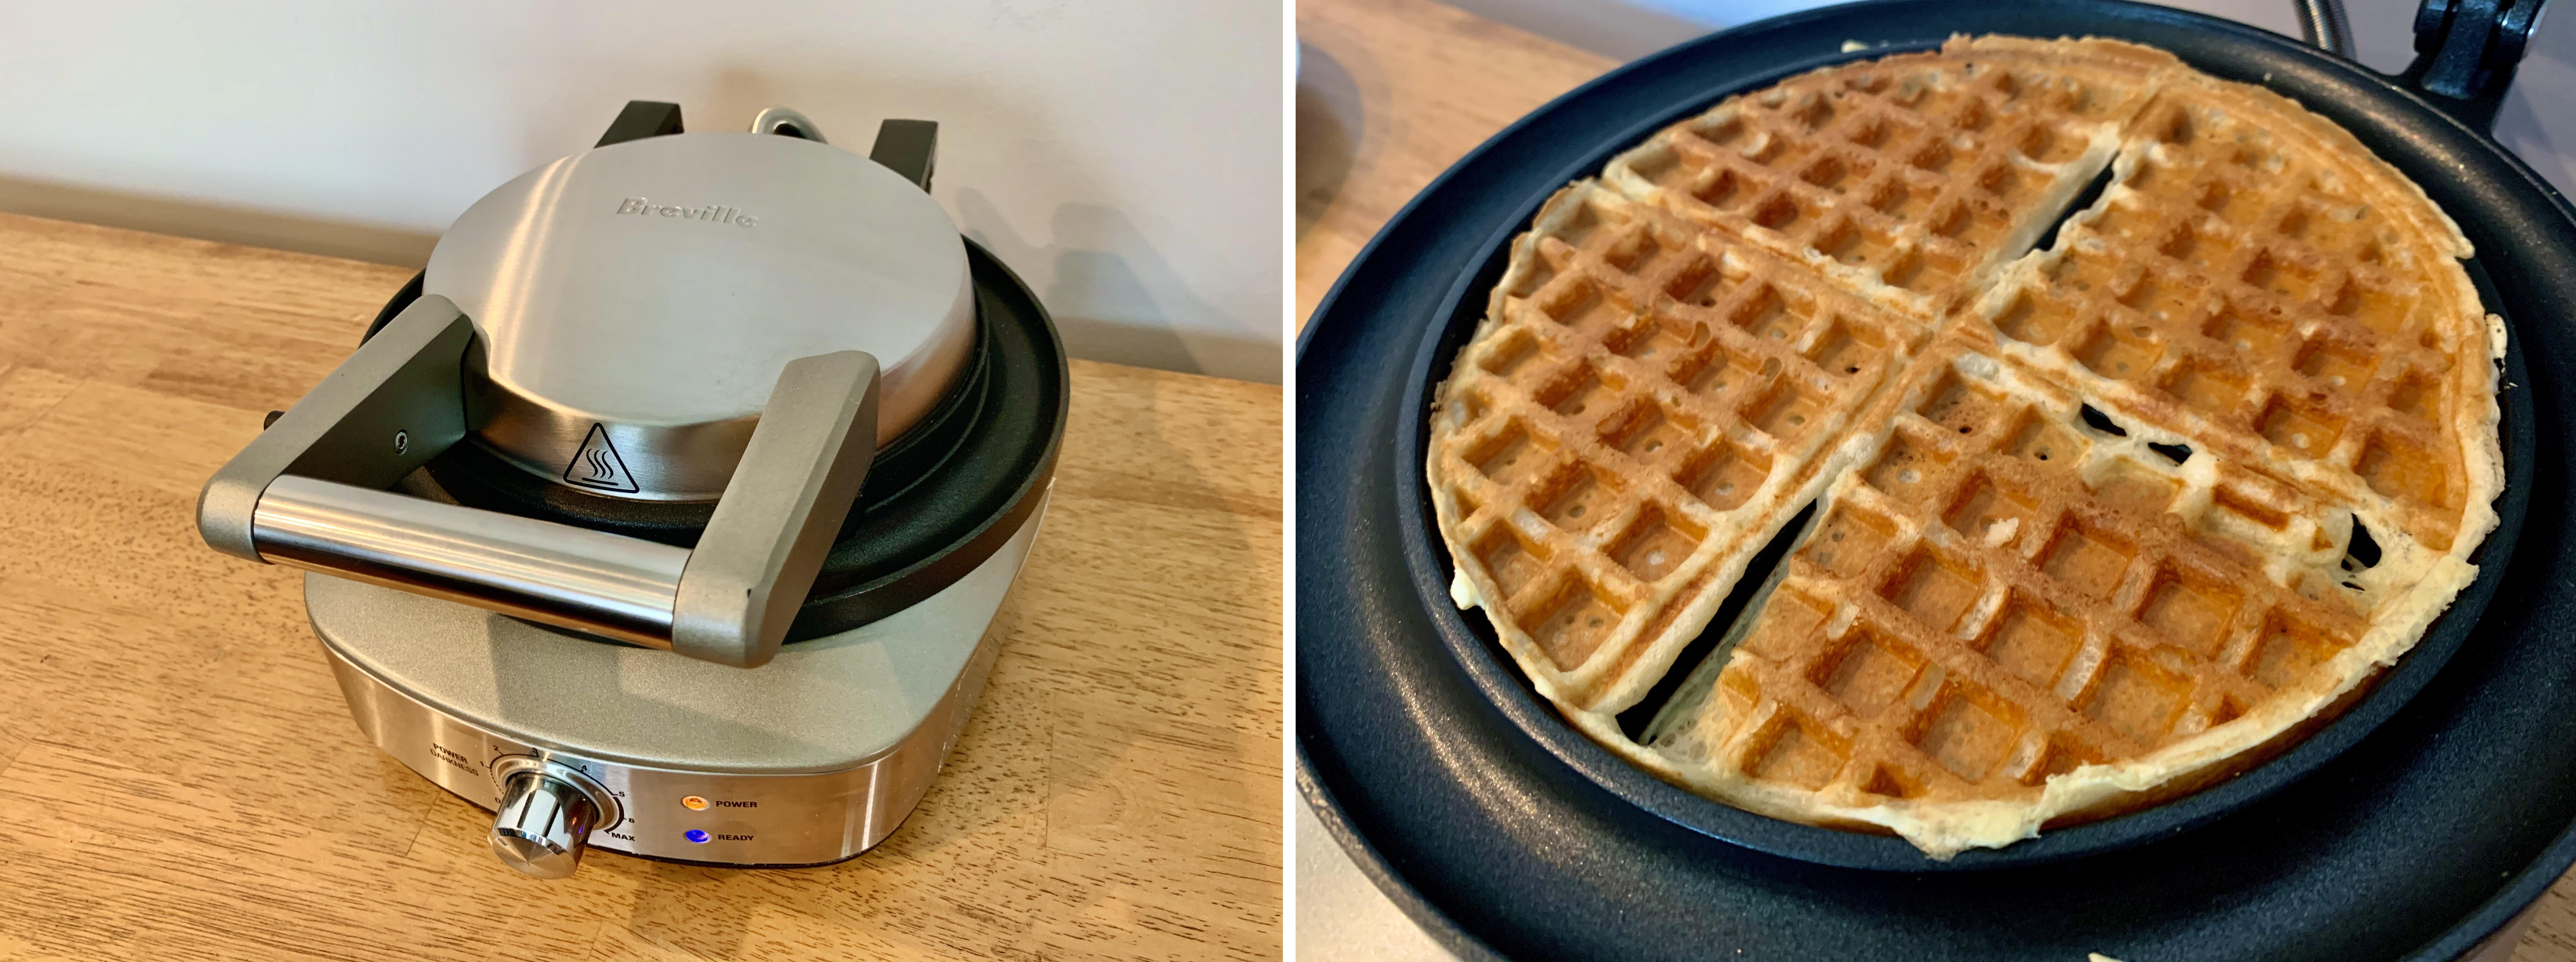 breville-waffle-maker-and-waffle